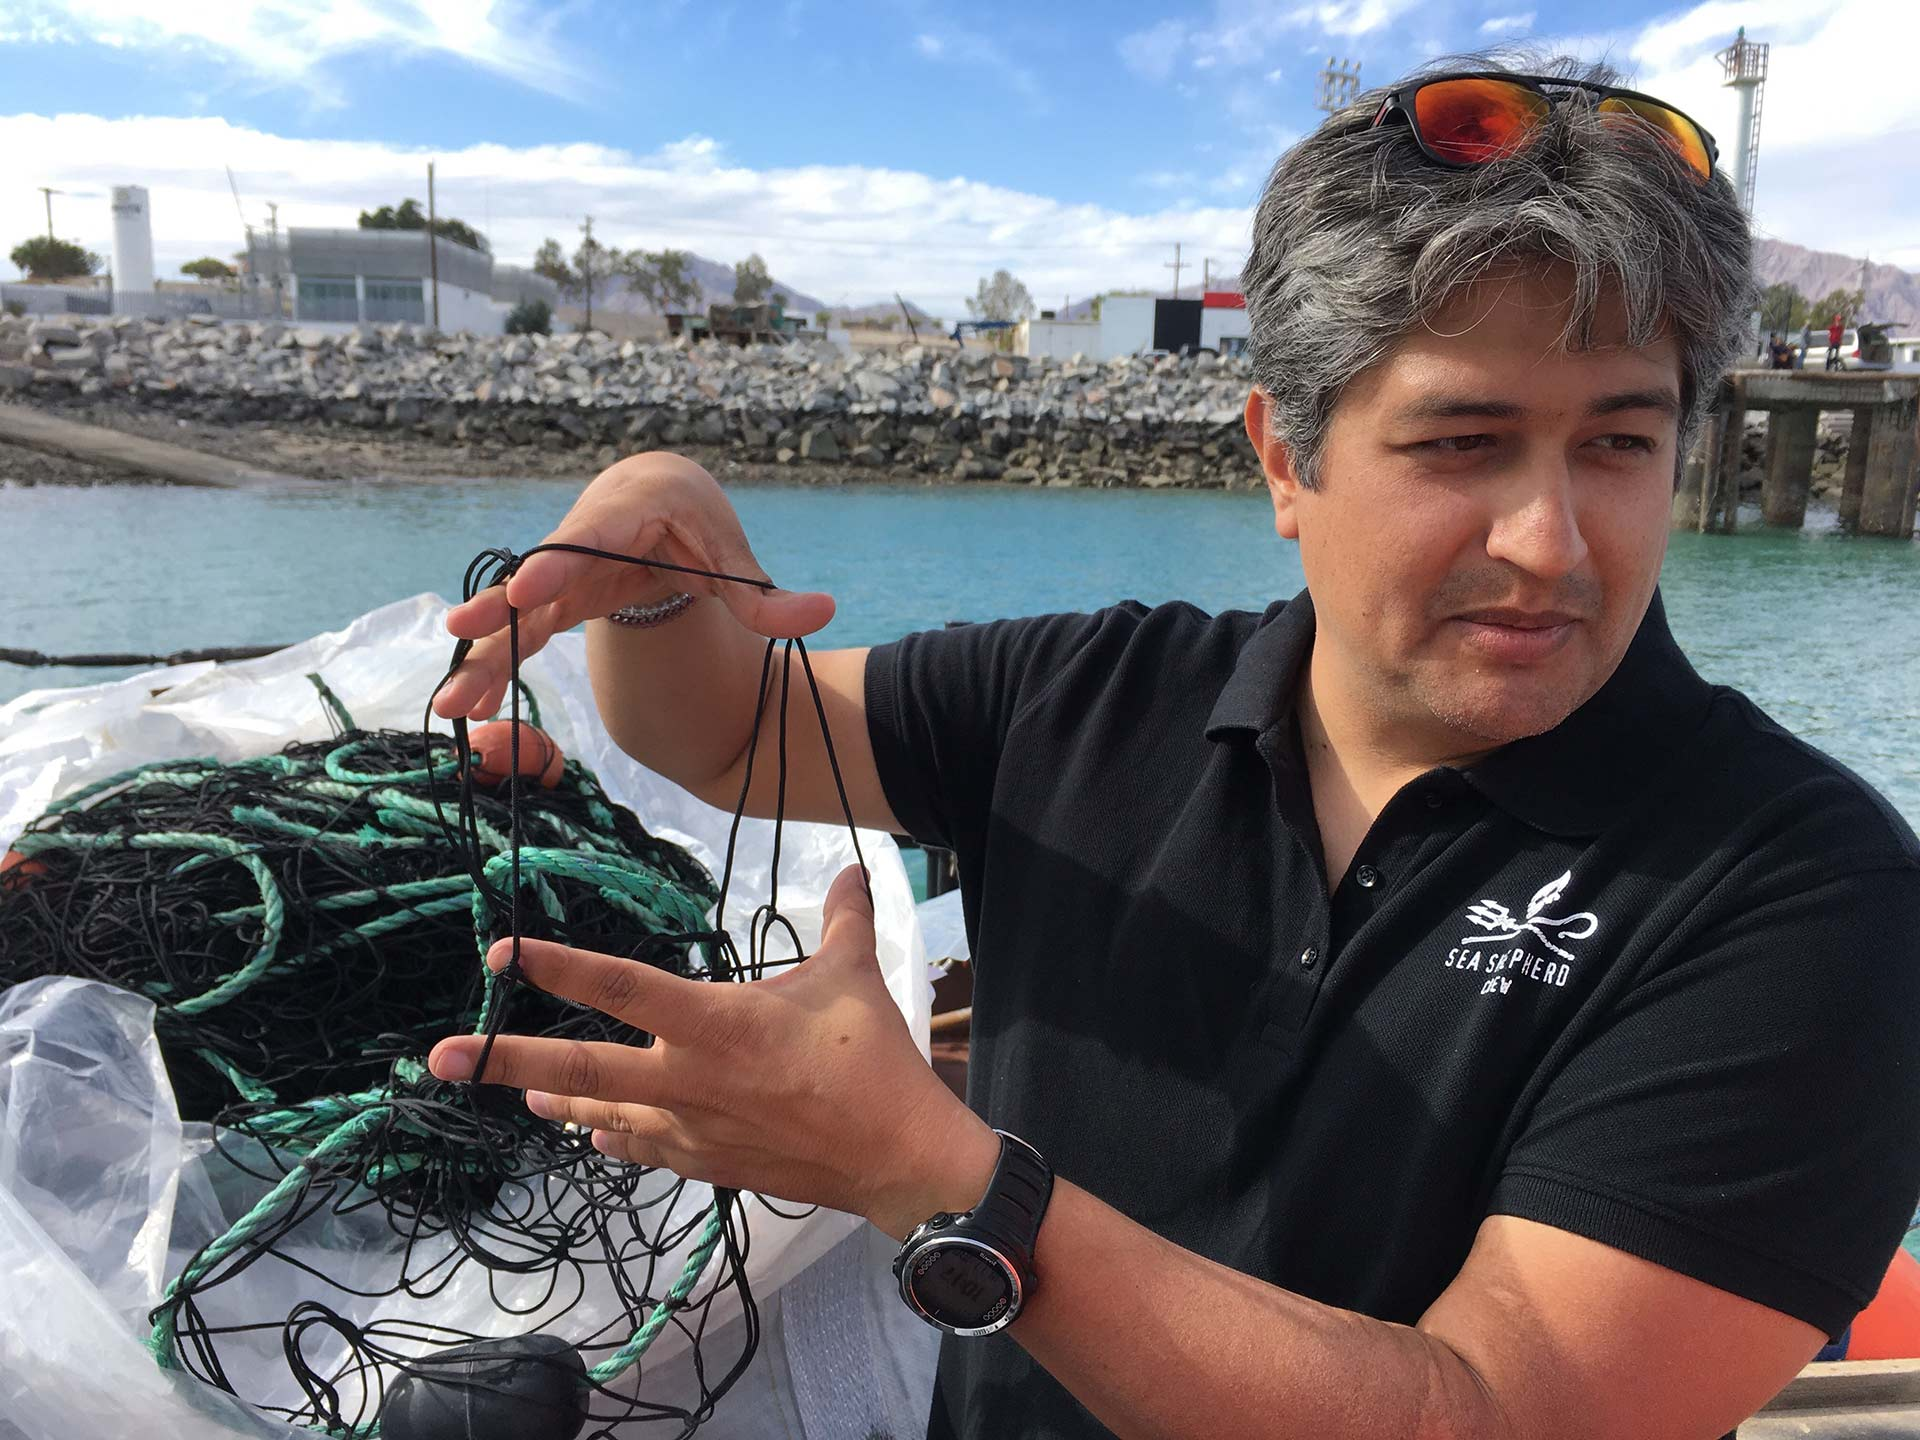 Sea Shepherd's JP Geoffroy demonstrates a gill net.